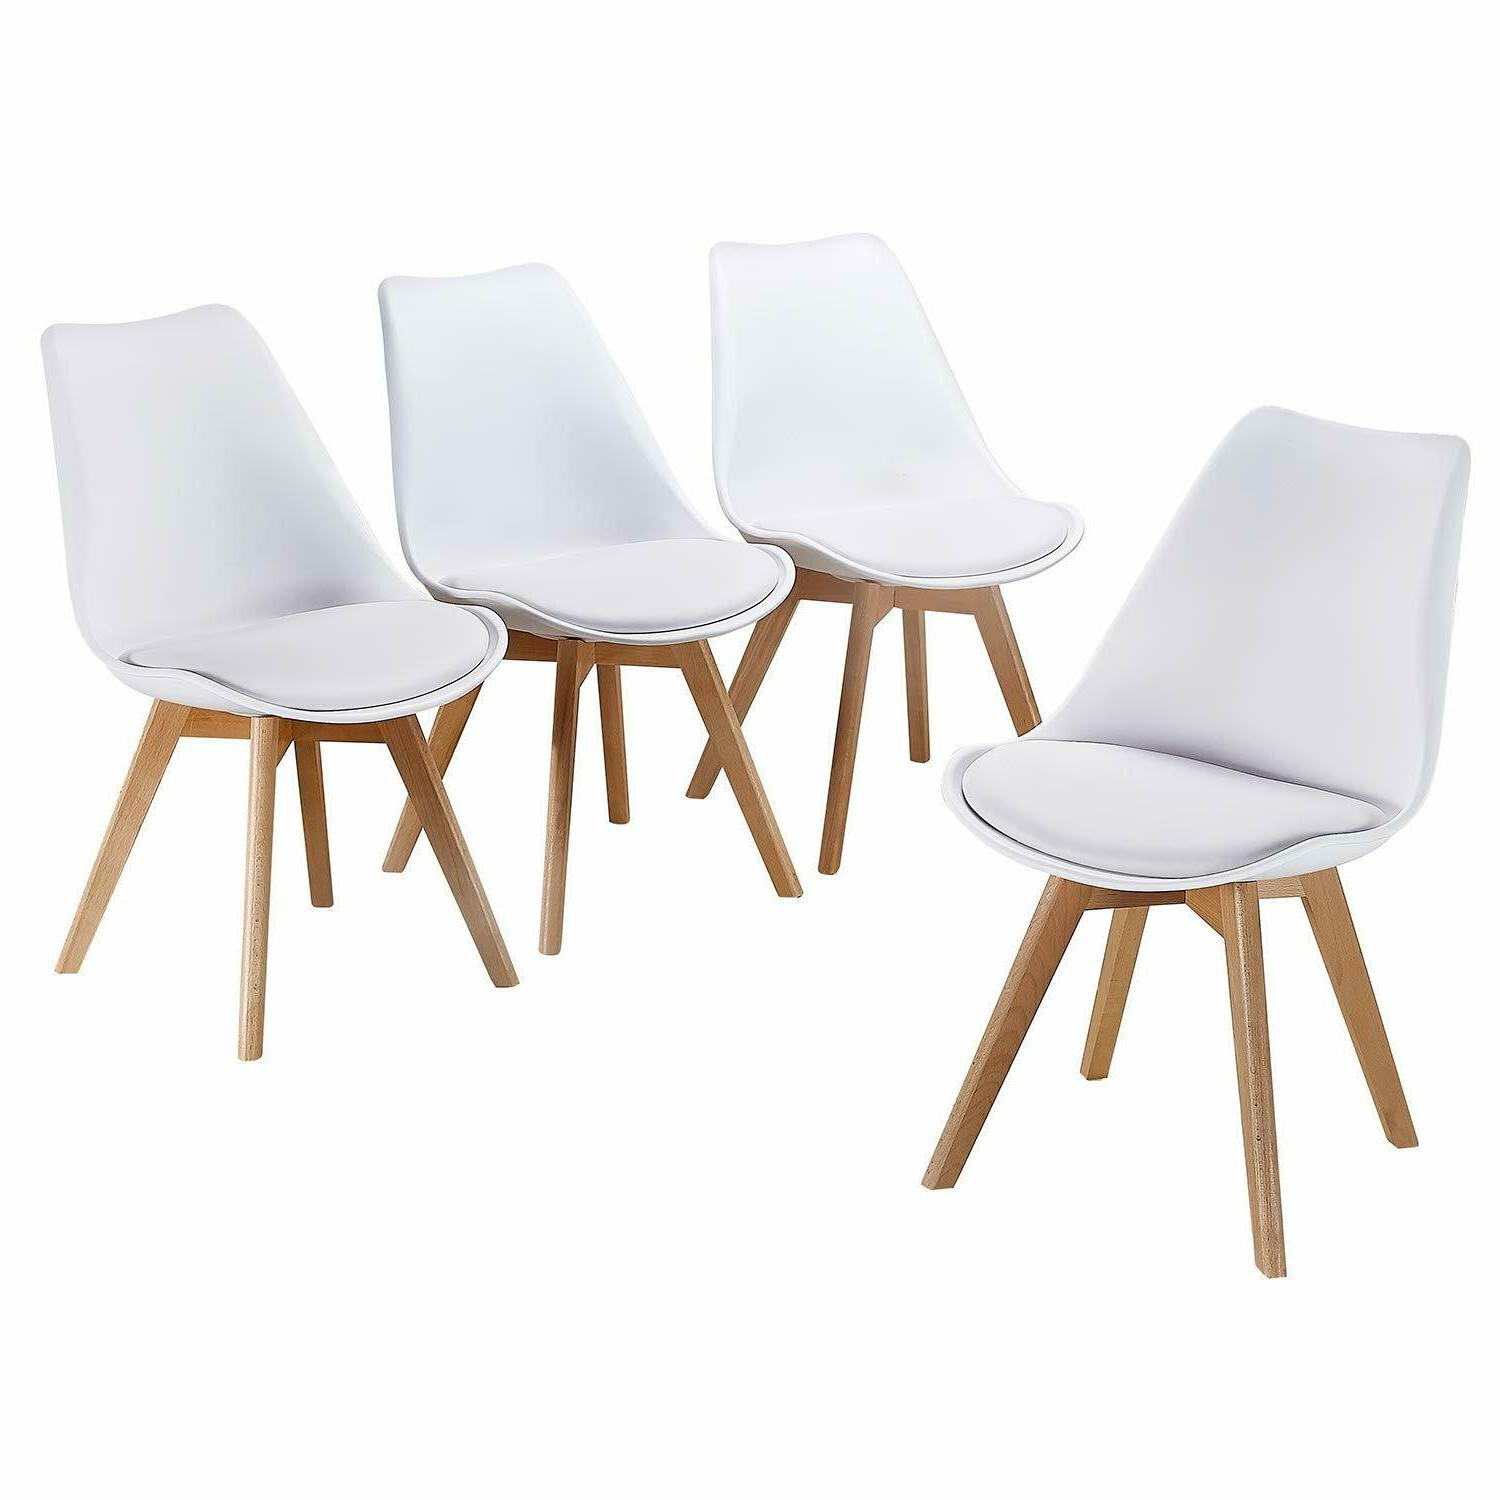 Dining Chairs PU with Wooden Legs, 4,